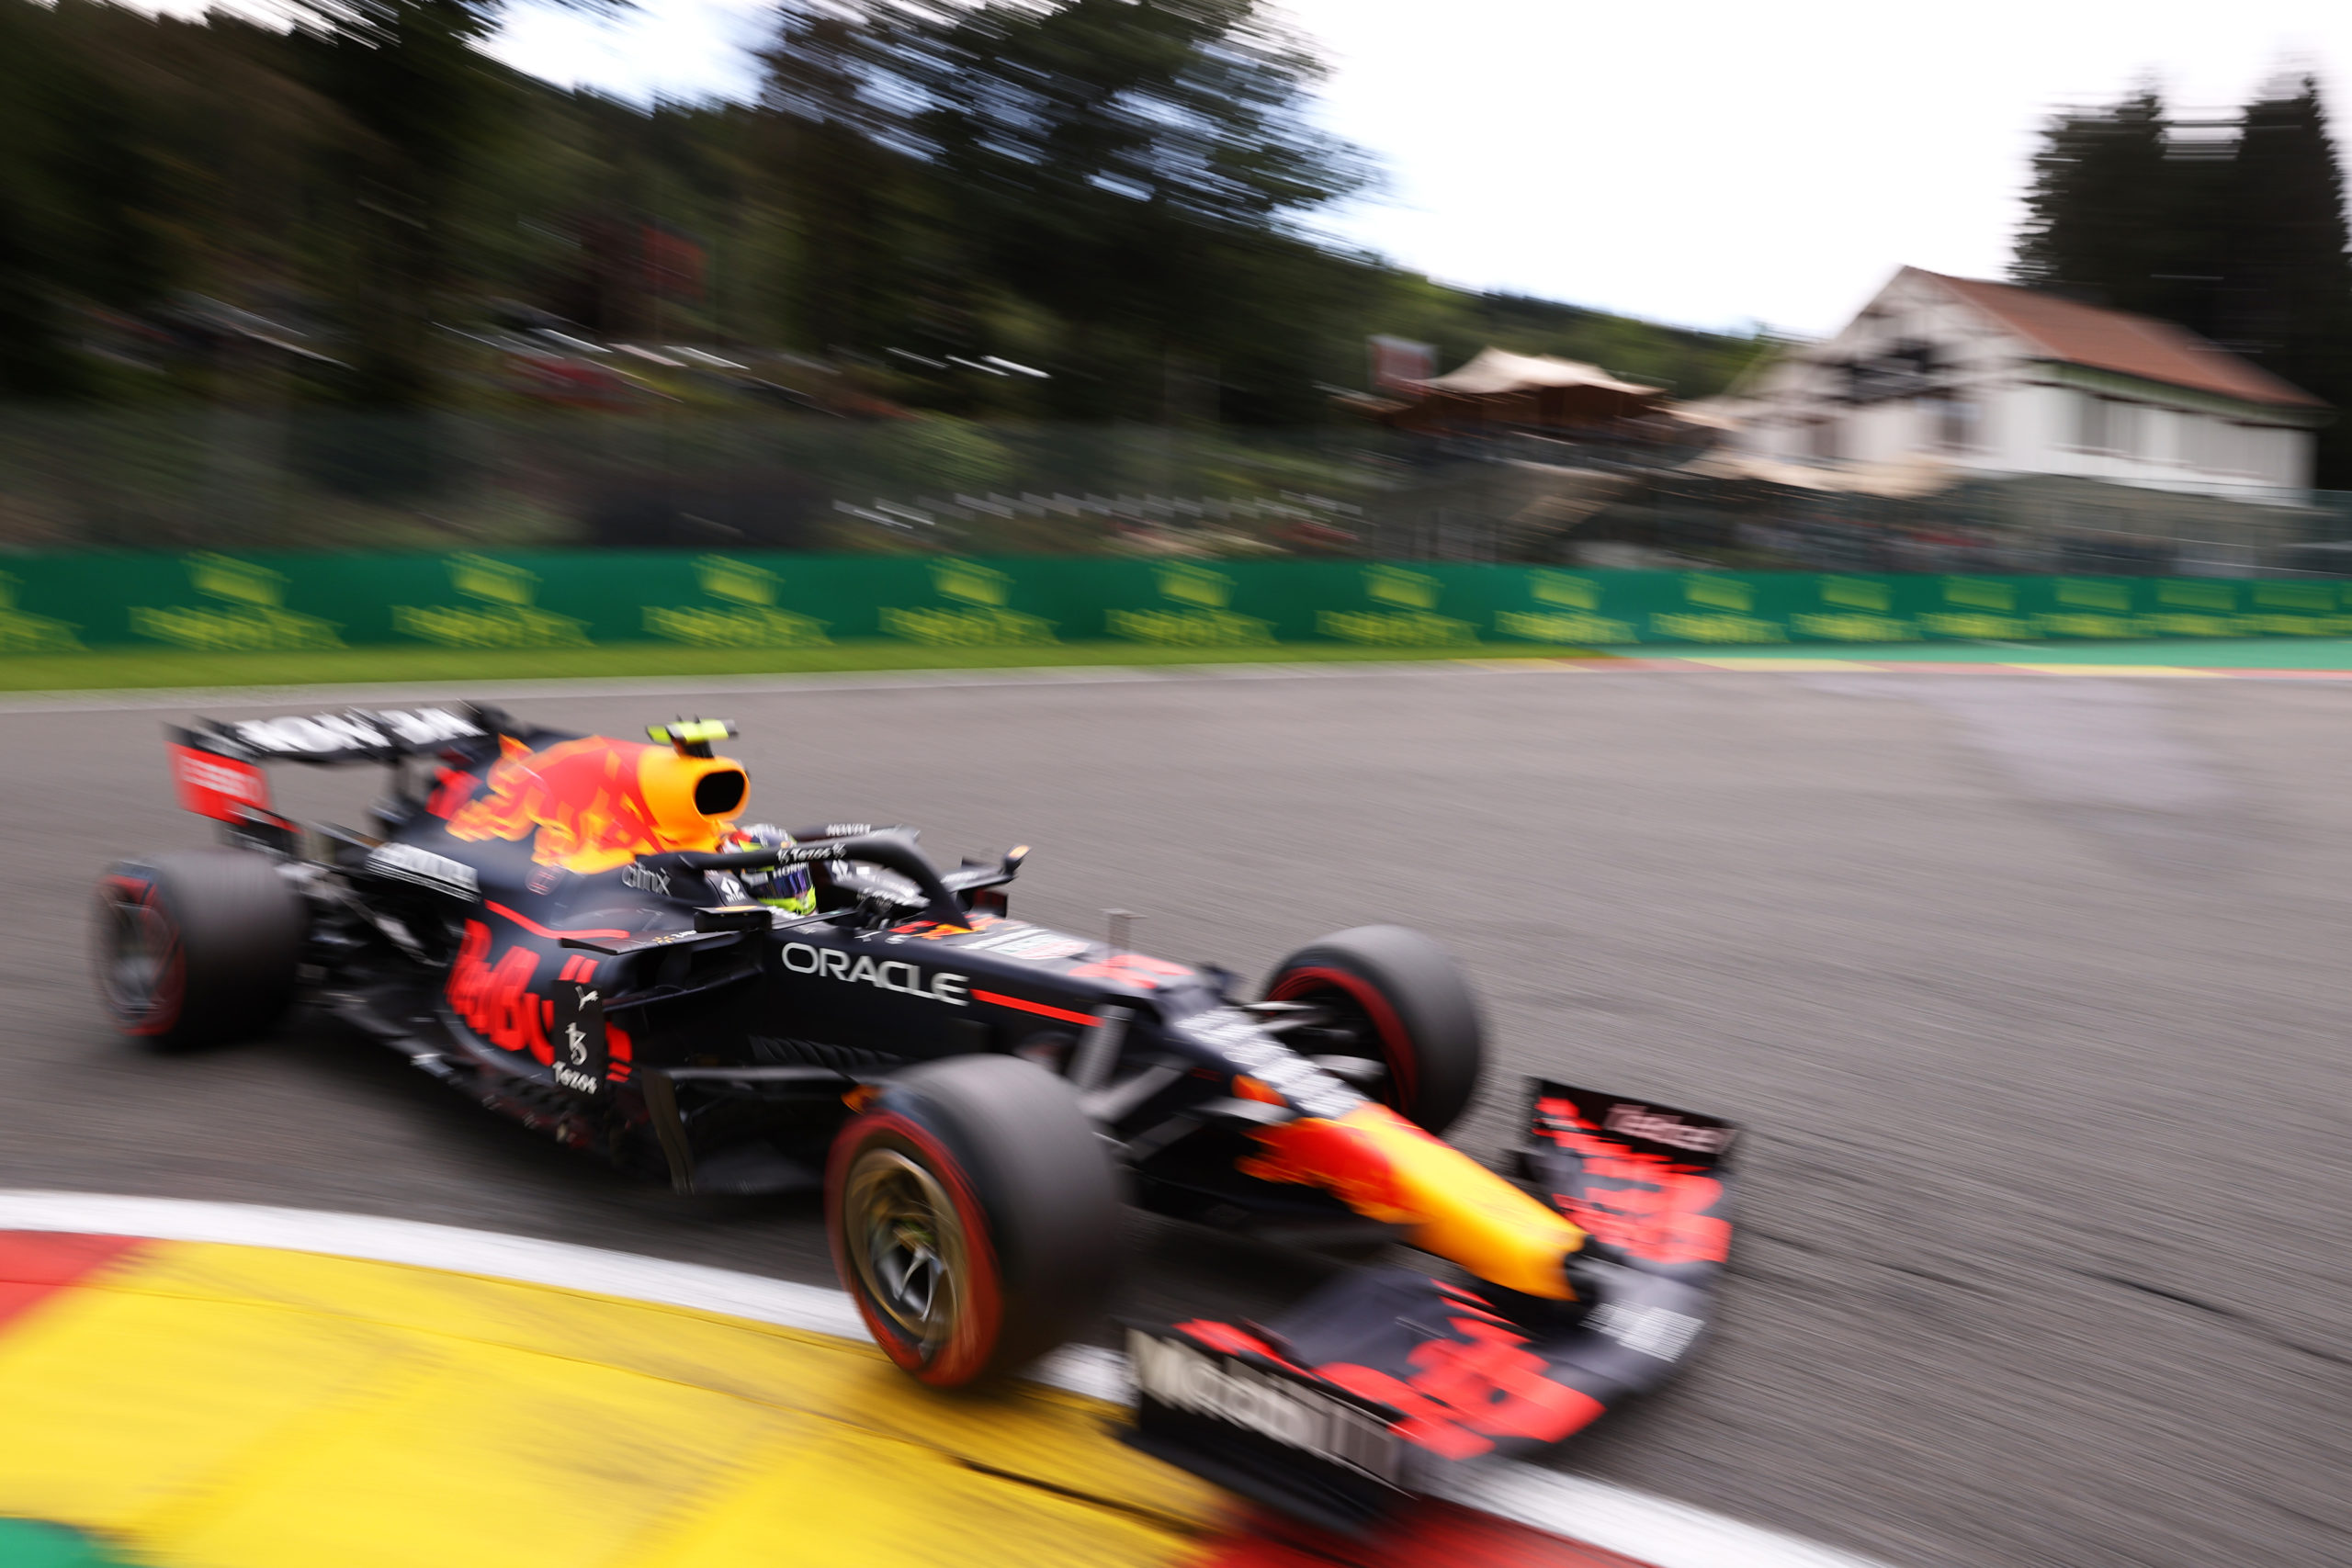 SPA, BELGIUM - AUGUST 27: Sergio Perez of Mexico driving the (11) Red Bull Racing RB16B Honda during practice ahead of the F1 Grand Prix of Belgium at Circuit de Spa-Francorchamps on August 27, 2021 in Spa, Belgium. (Photo by Lars Baron/Getty Images) // Getty Images / Red Bull Content Pool  // SI202108270214 // Usage for editorial use only //